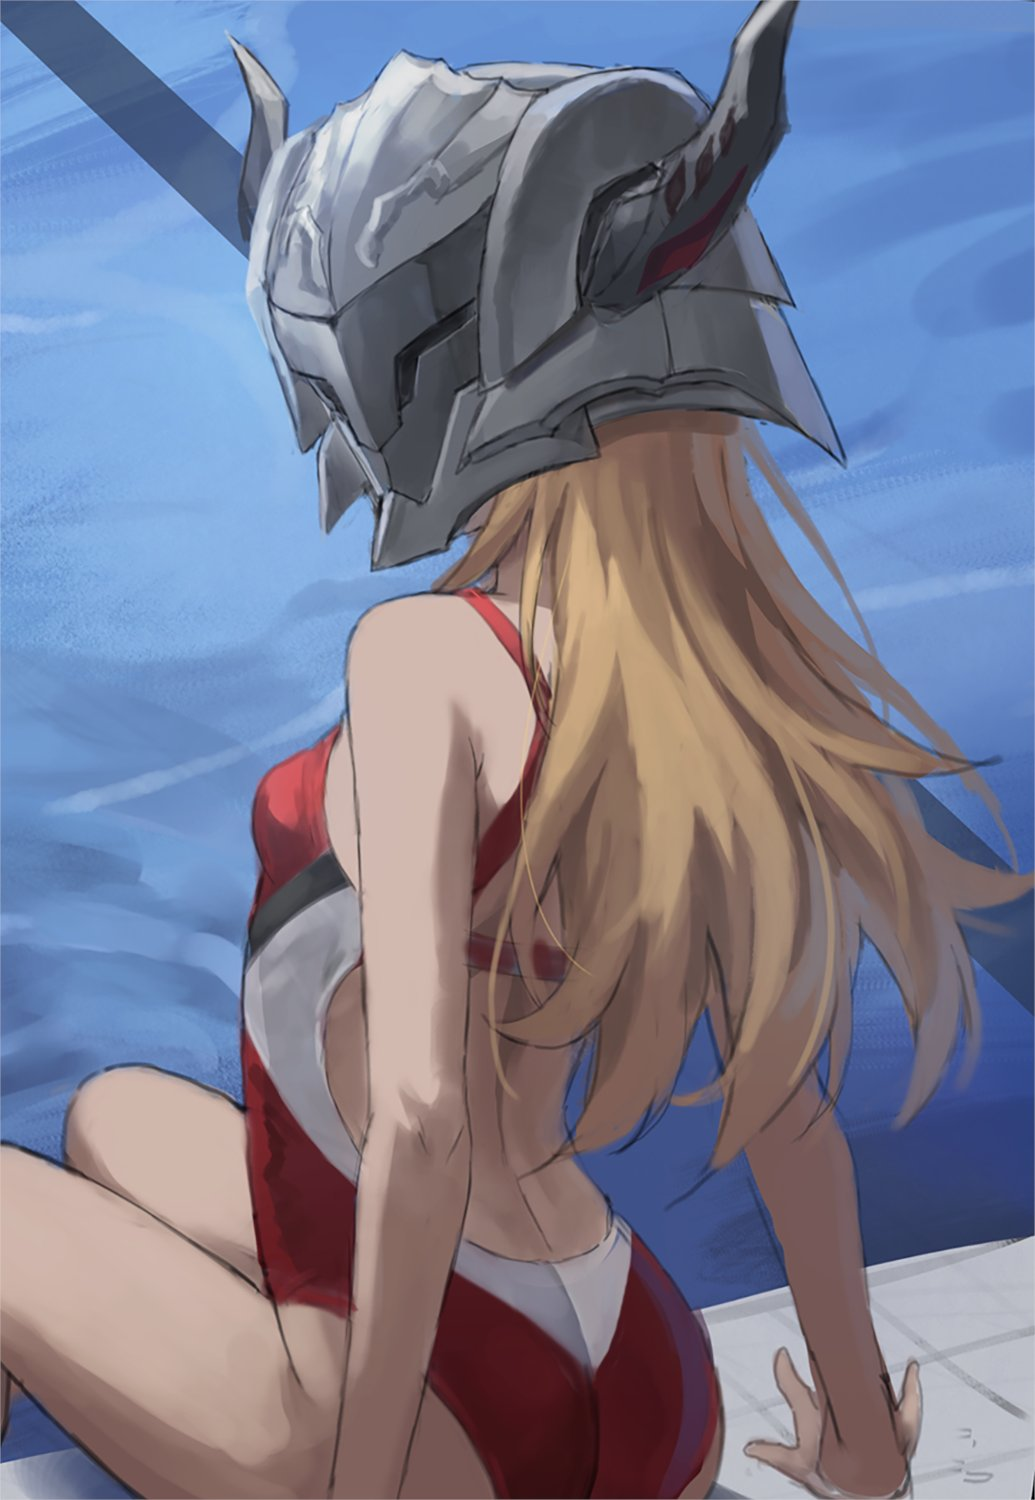 1girl ass blonde_hair breasts competition_swimsuit fate/apocrypha fate_(series) from_behind helmet highres long_hair looking_at_viewer looking_back mordred_(fate) mordred_(fate)_(all) one-piece_swimsuit poolside red_swimsuit sitting small_breasts solo swimsuit tonee water